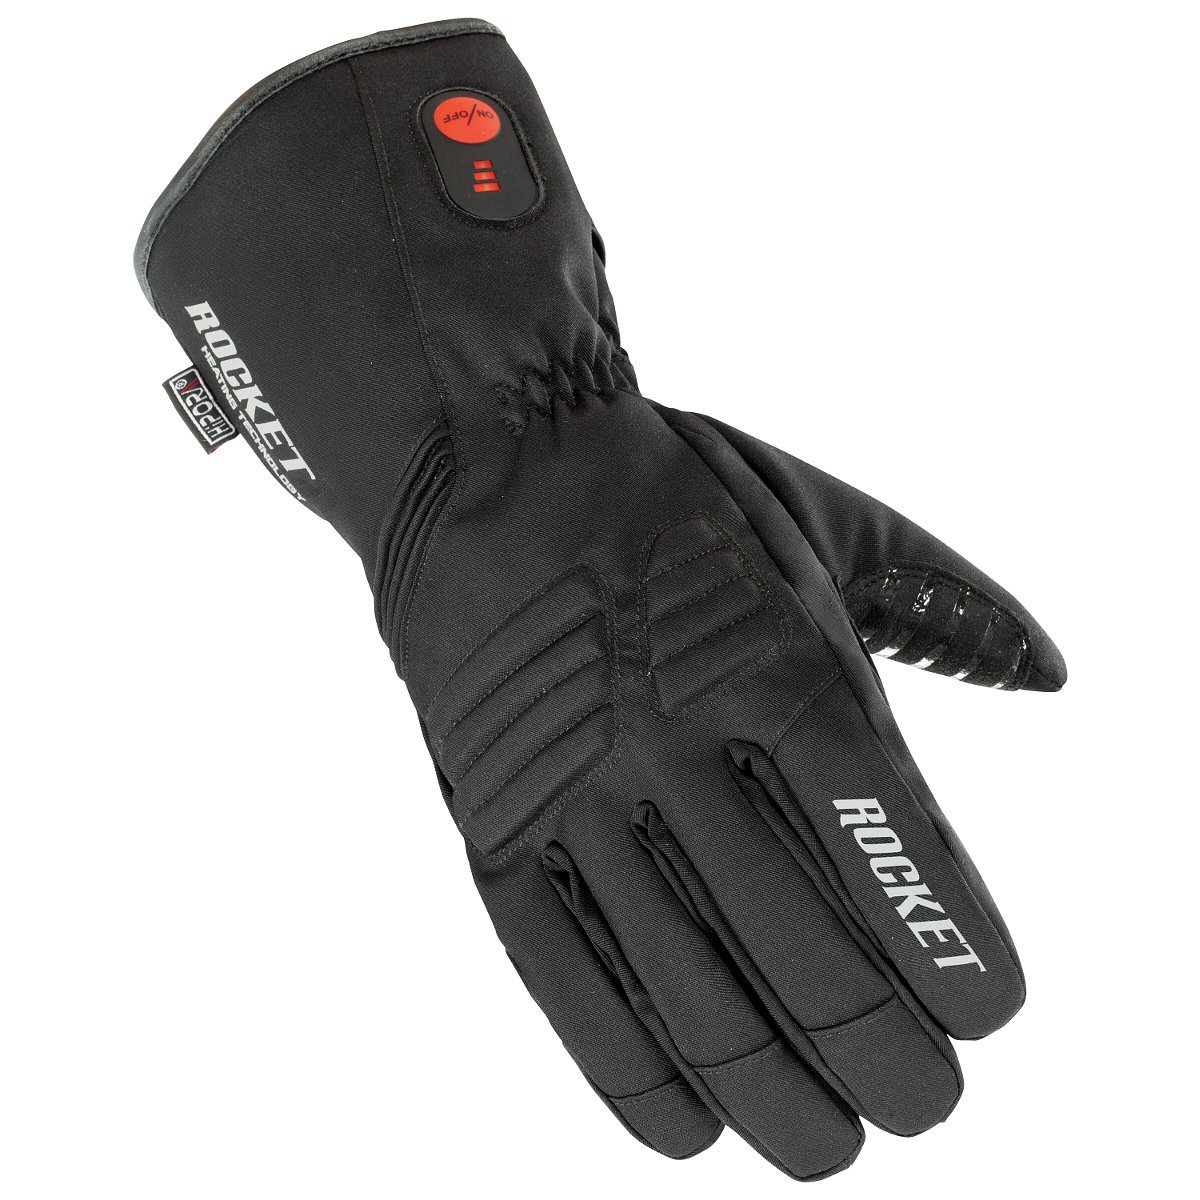 HJC Rocket Burner Men's Heated Cold Weather Gloves (Black, X-Large)